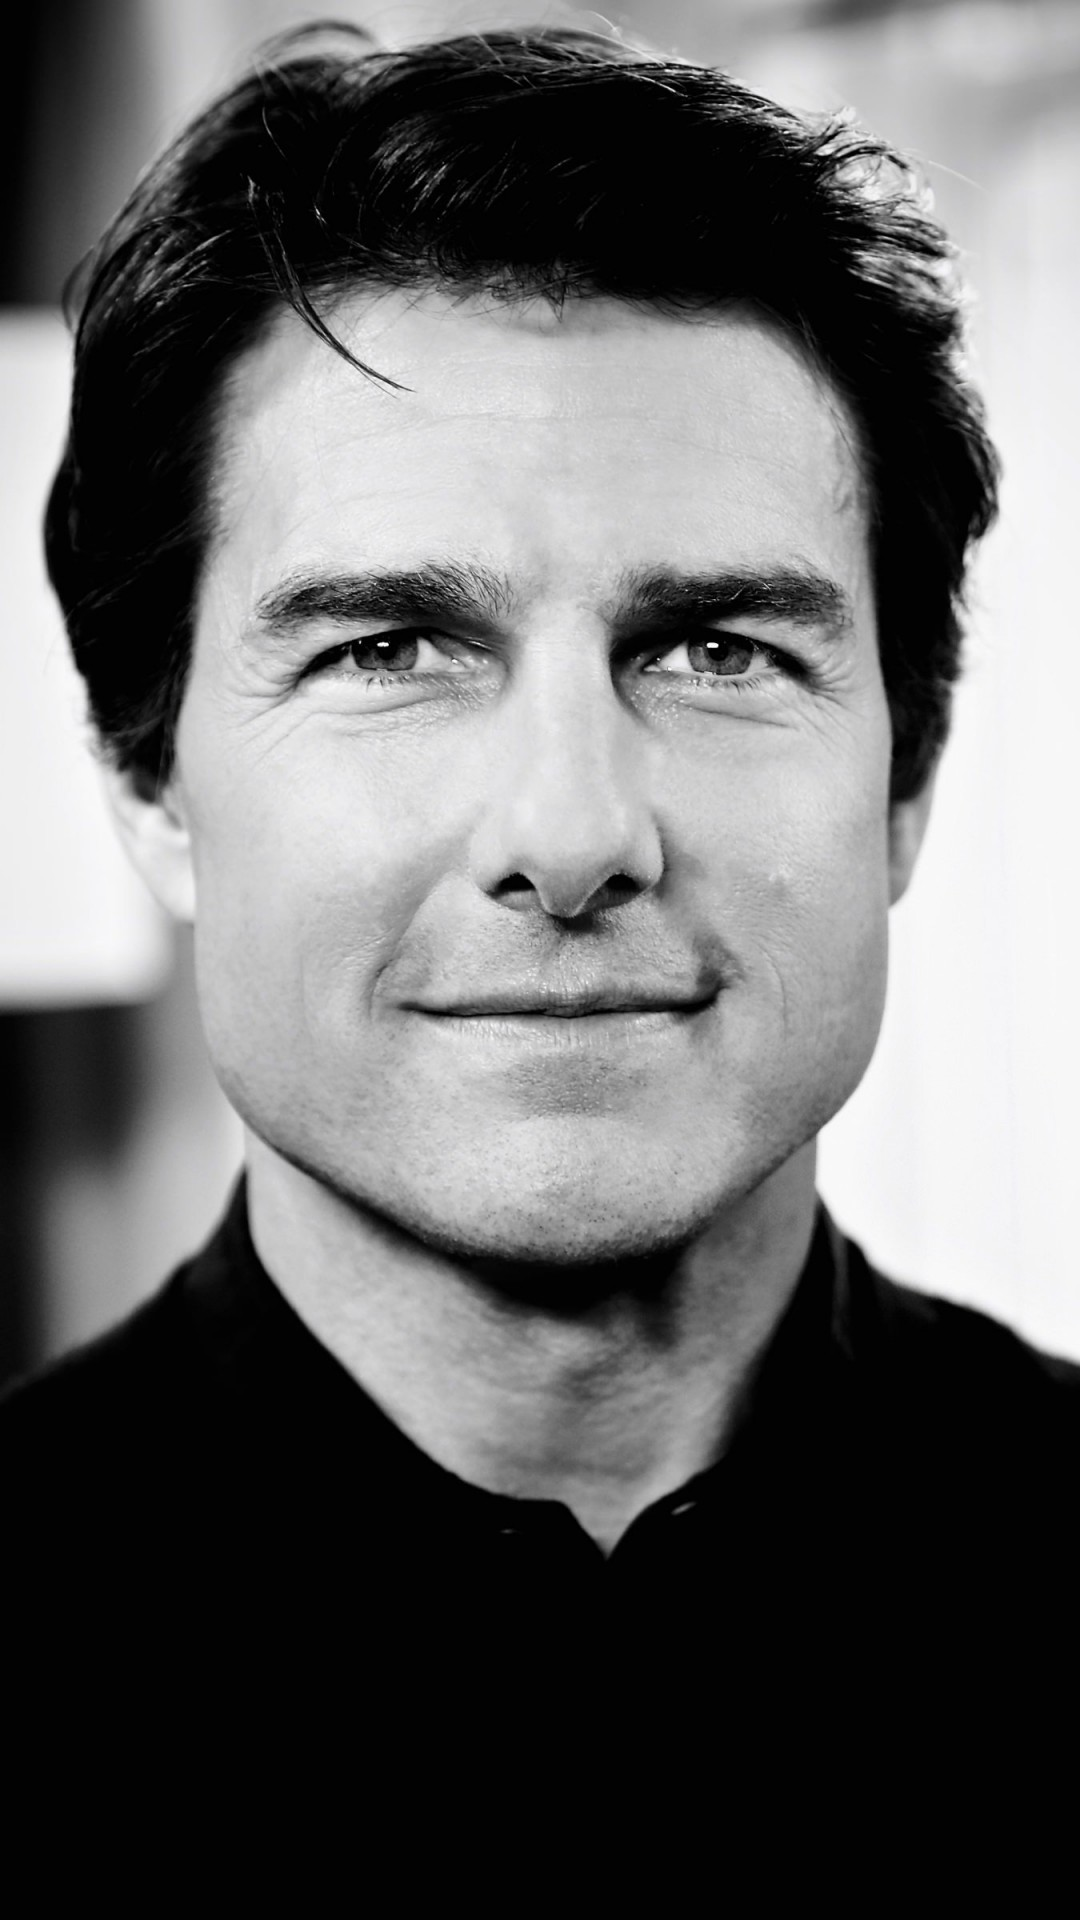 Tom Cruise Black & White Portrait Wallpaper for SONY Xperia Z1